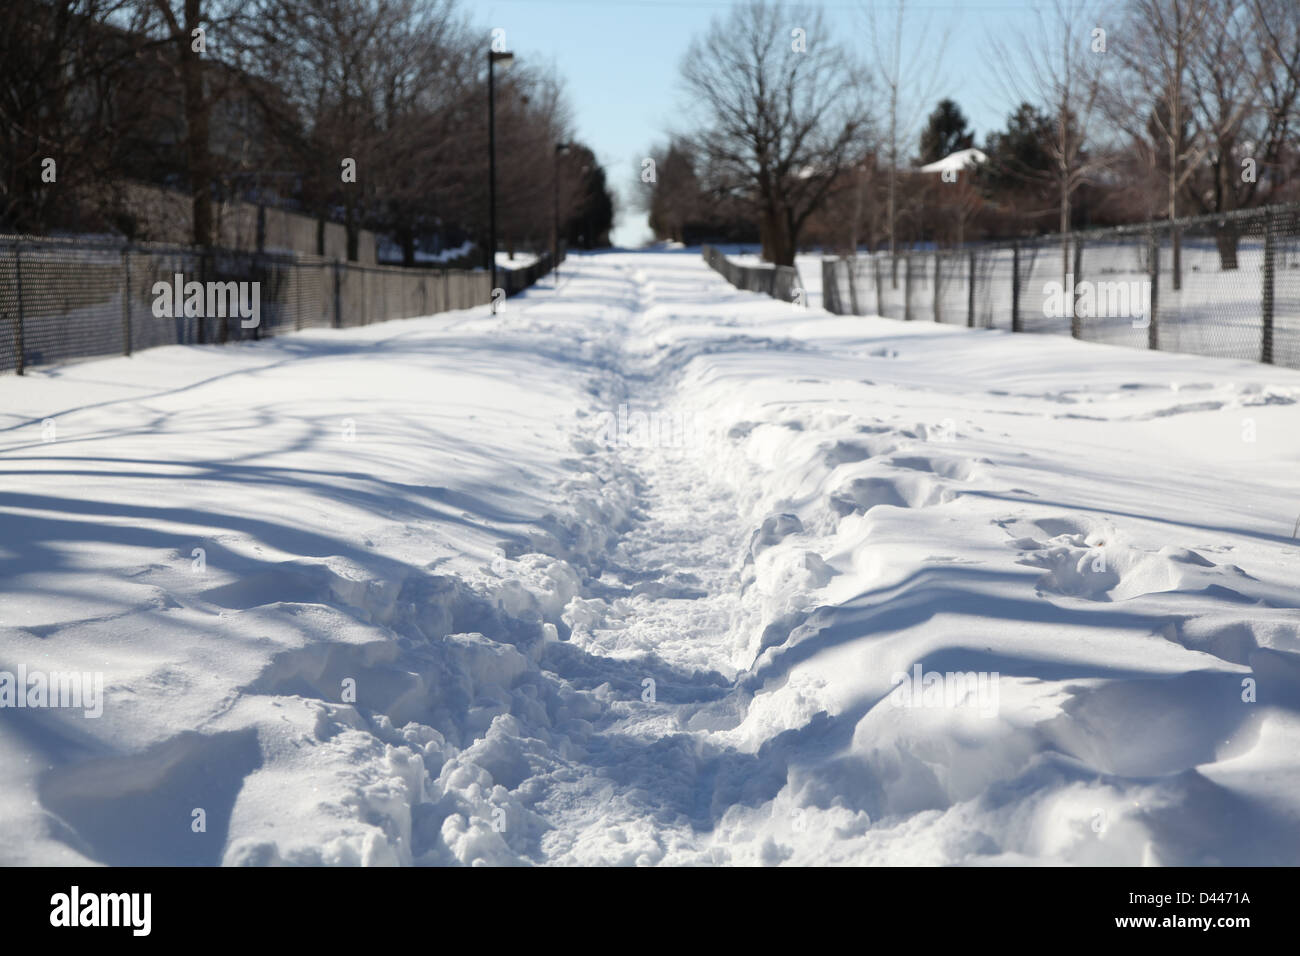 winter snow covered ground residential area - Stock Image